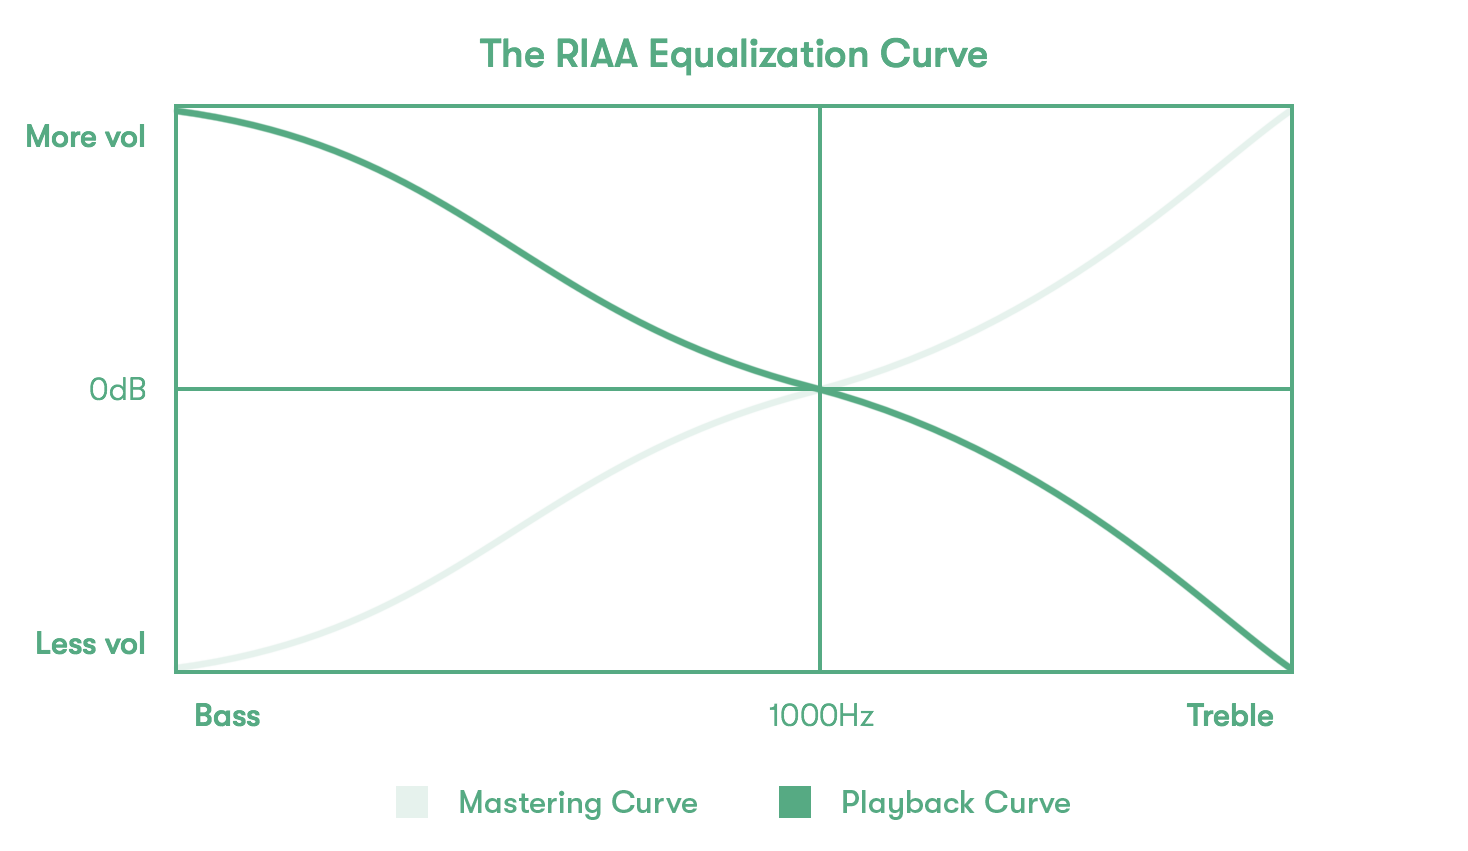 The RIAA equalization curve